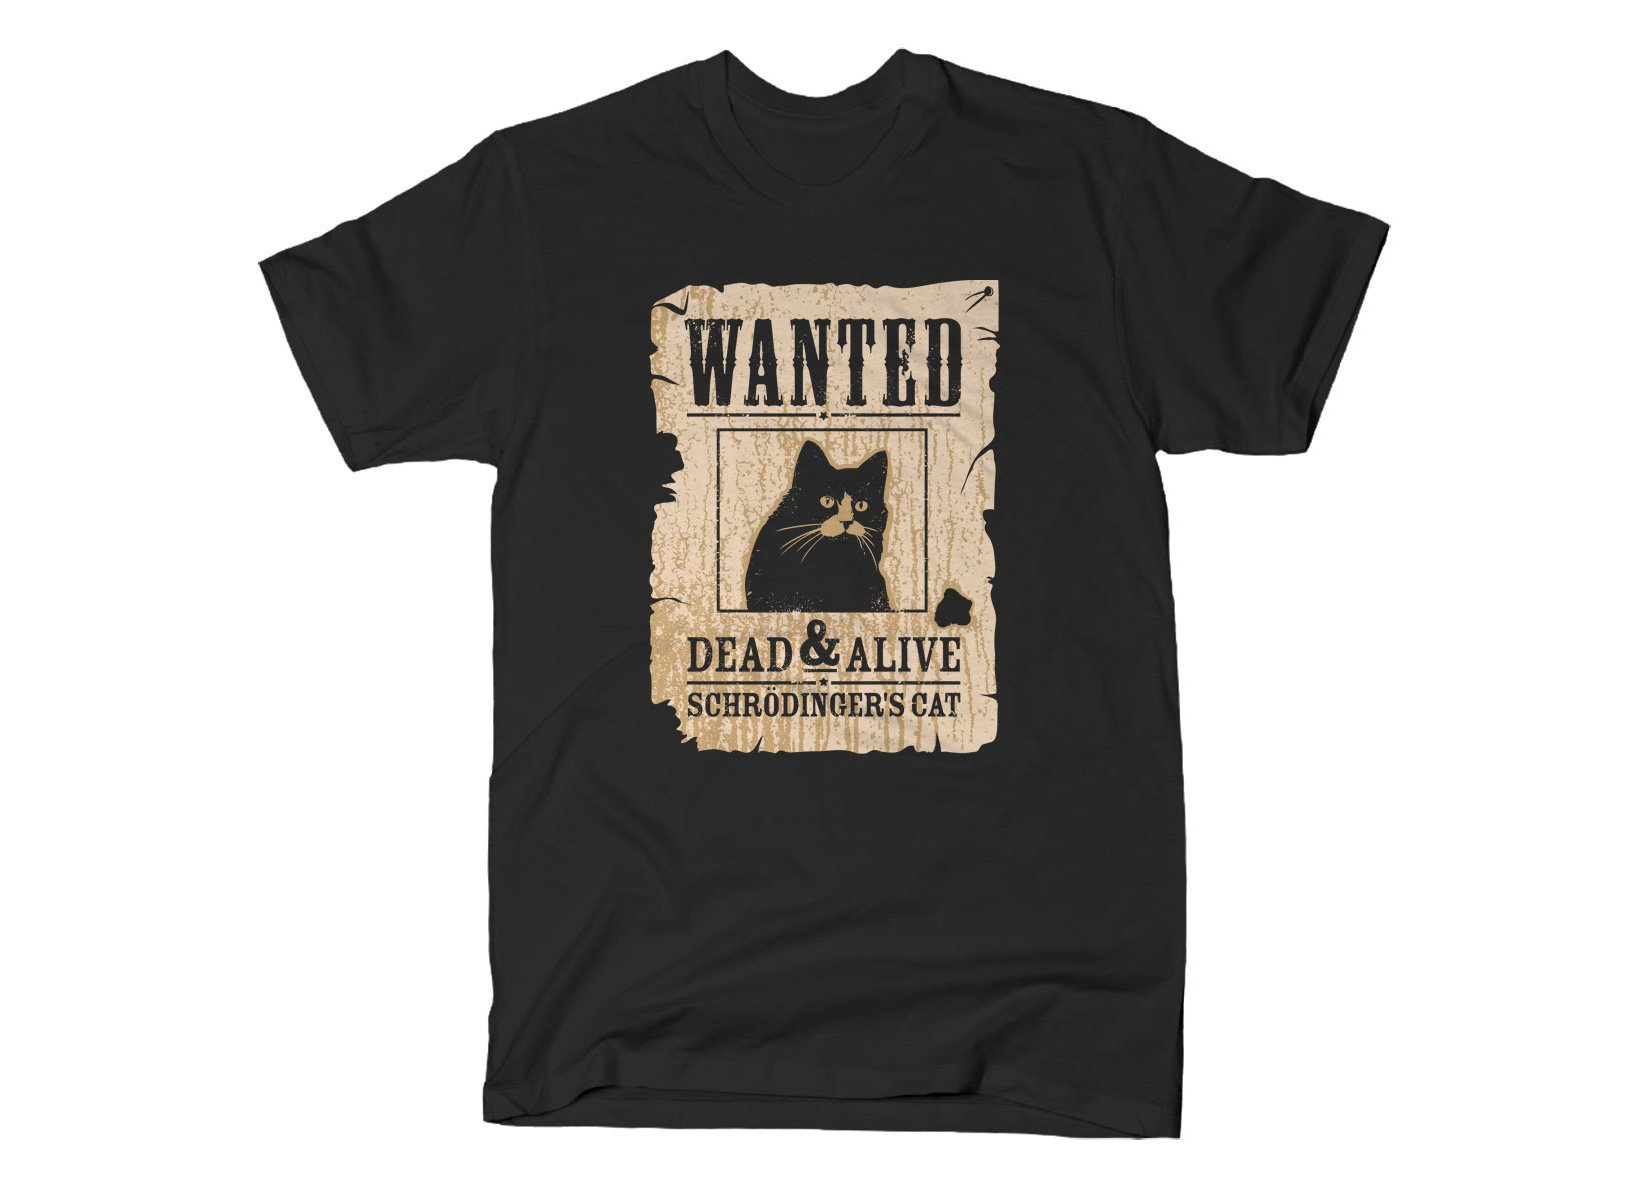 Wanted Dead And Alive on Mens T-Shirt